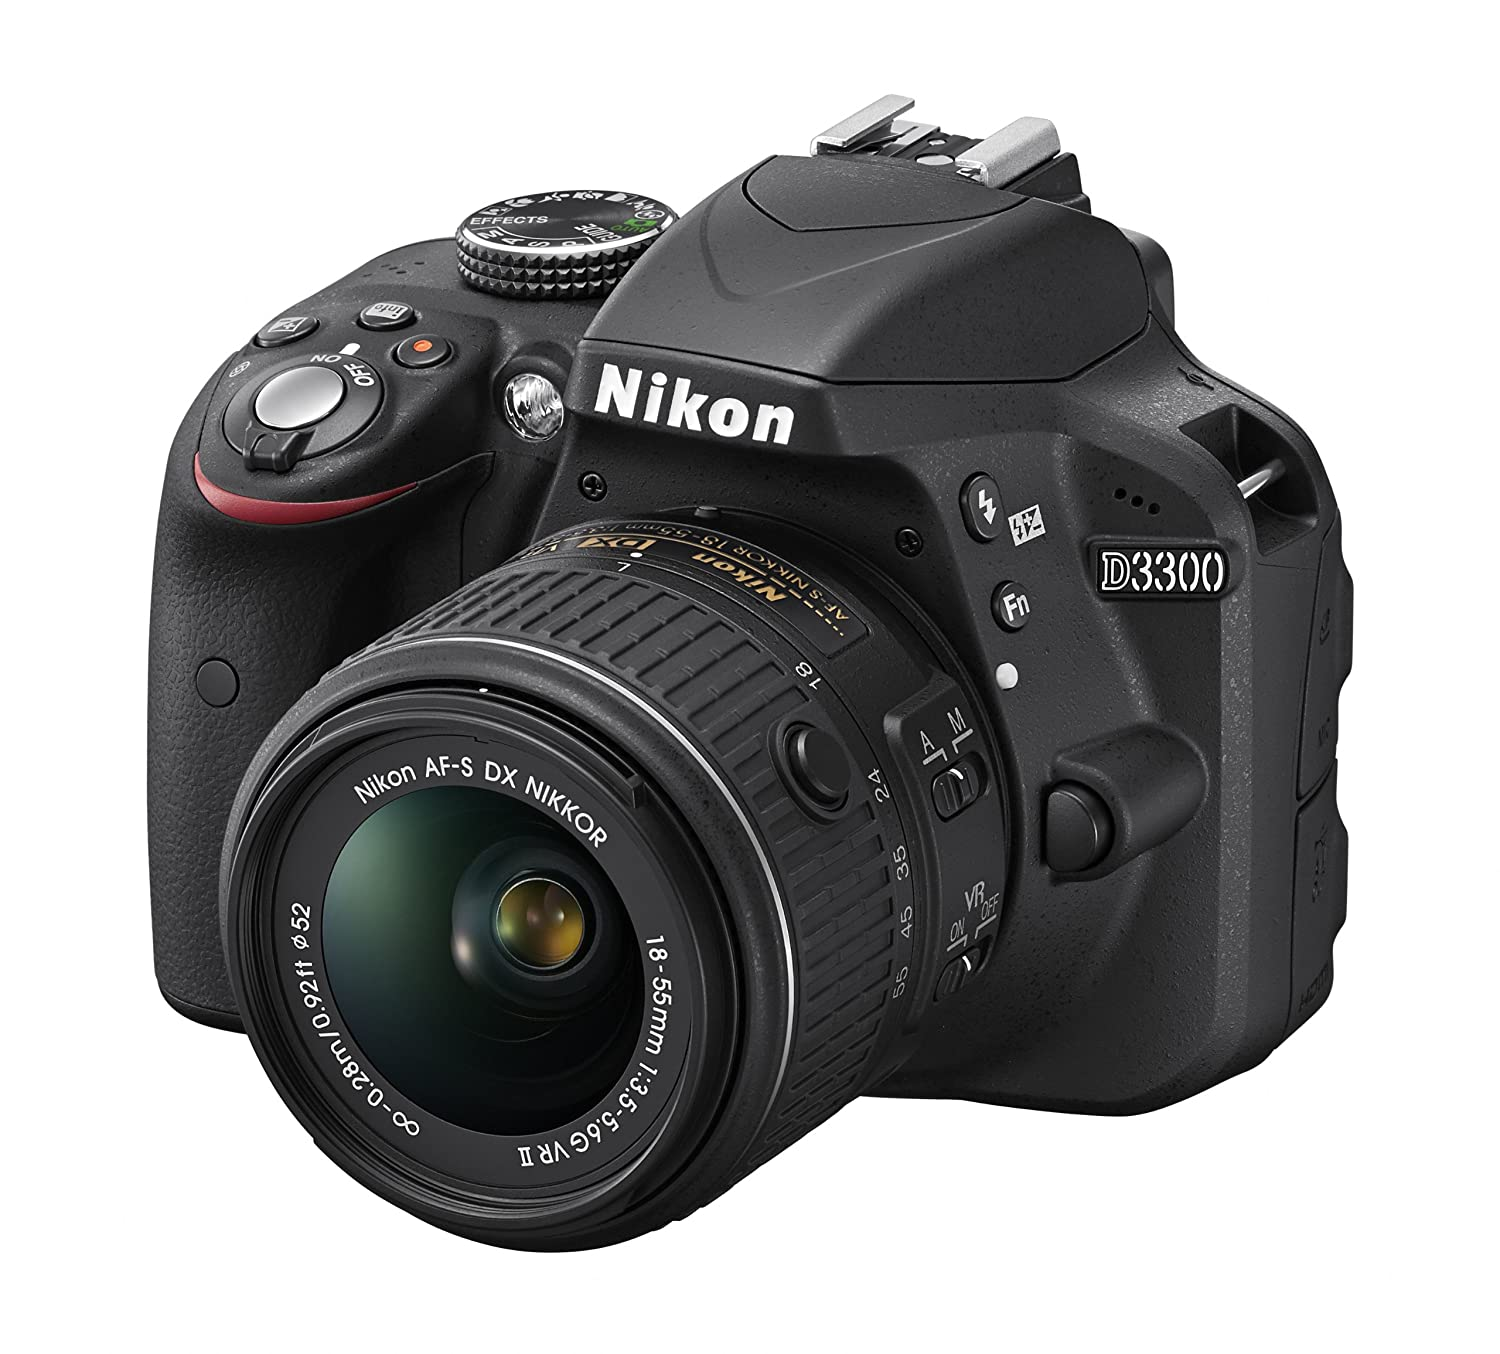 Camera Where Can I Sell My Dslr Camera amazon com nikon d3300 1532 18 55mm f3 5 6g vr ii auto focus s dx nikkor zoom lens 24 2 mp digital slr black camera